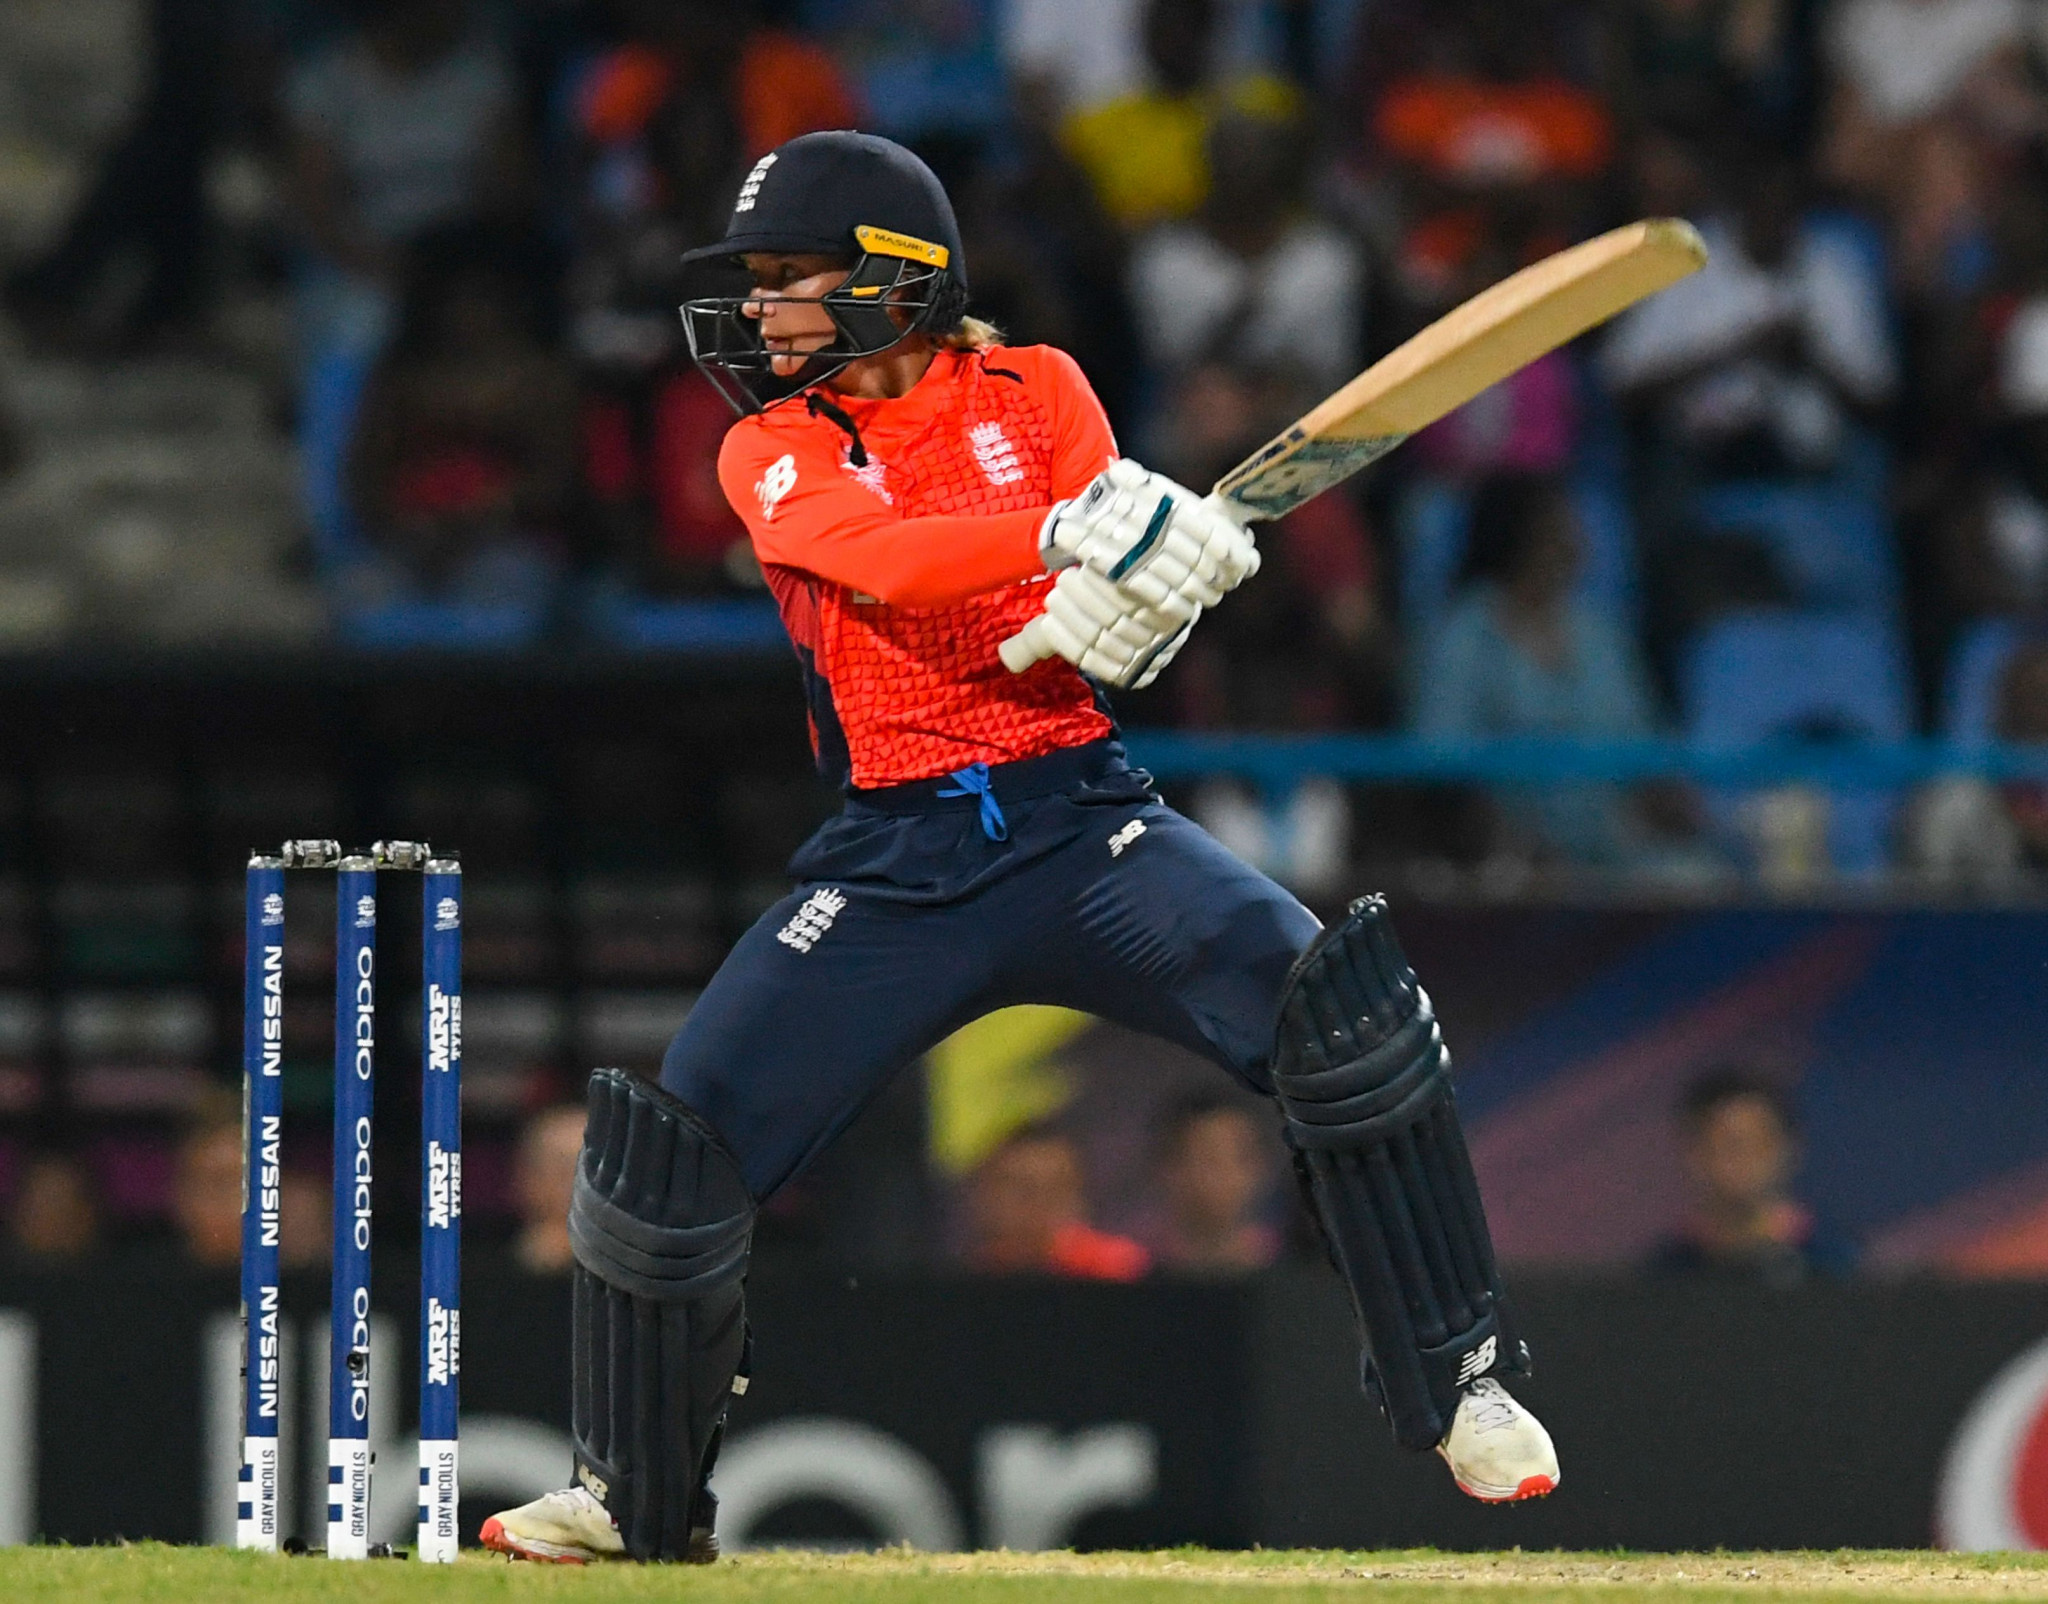 """Women's cricket at 2022 Commonwealth Games is part of """"journey"""" to potential Olympic status, claims ICC chief executive"""